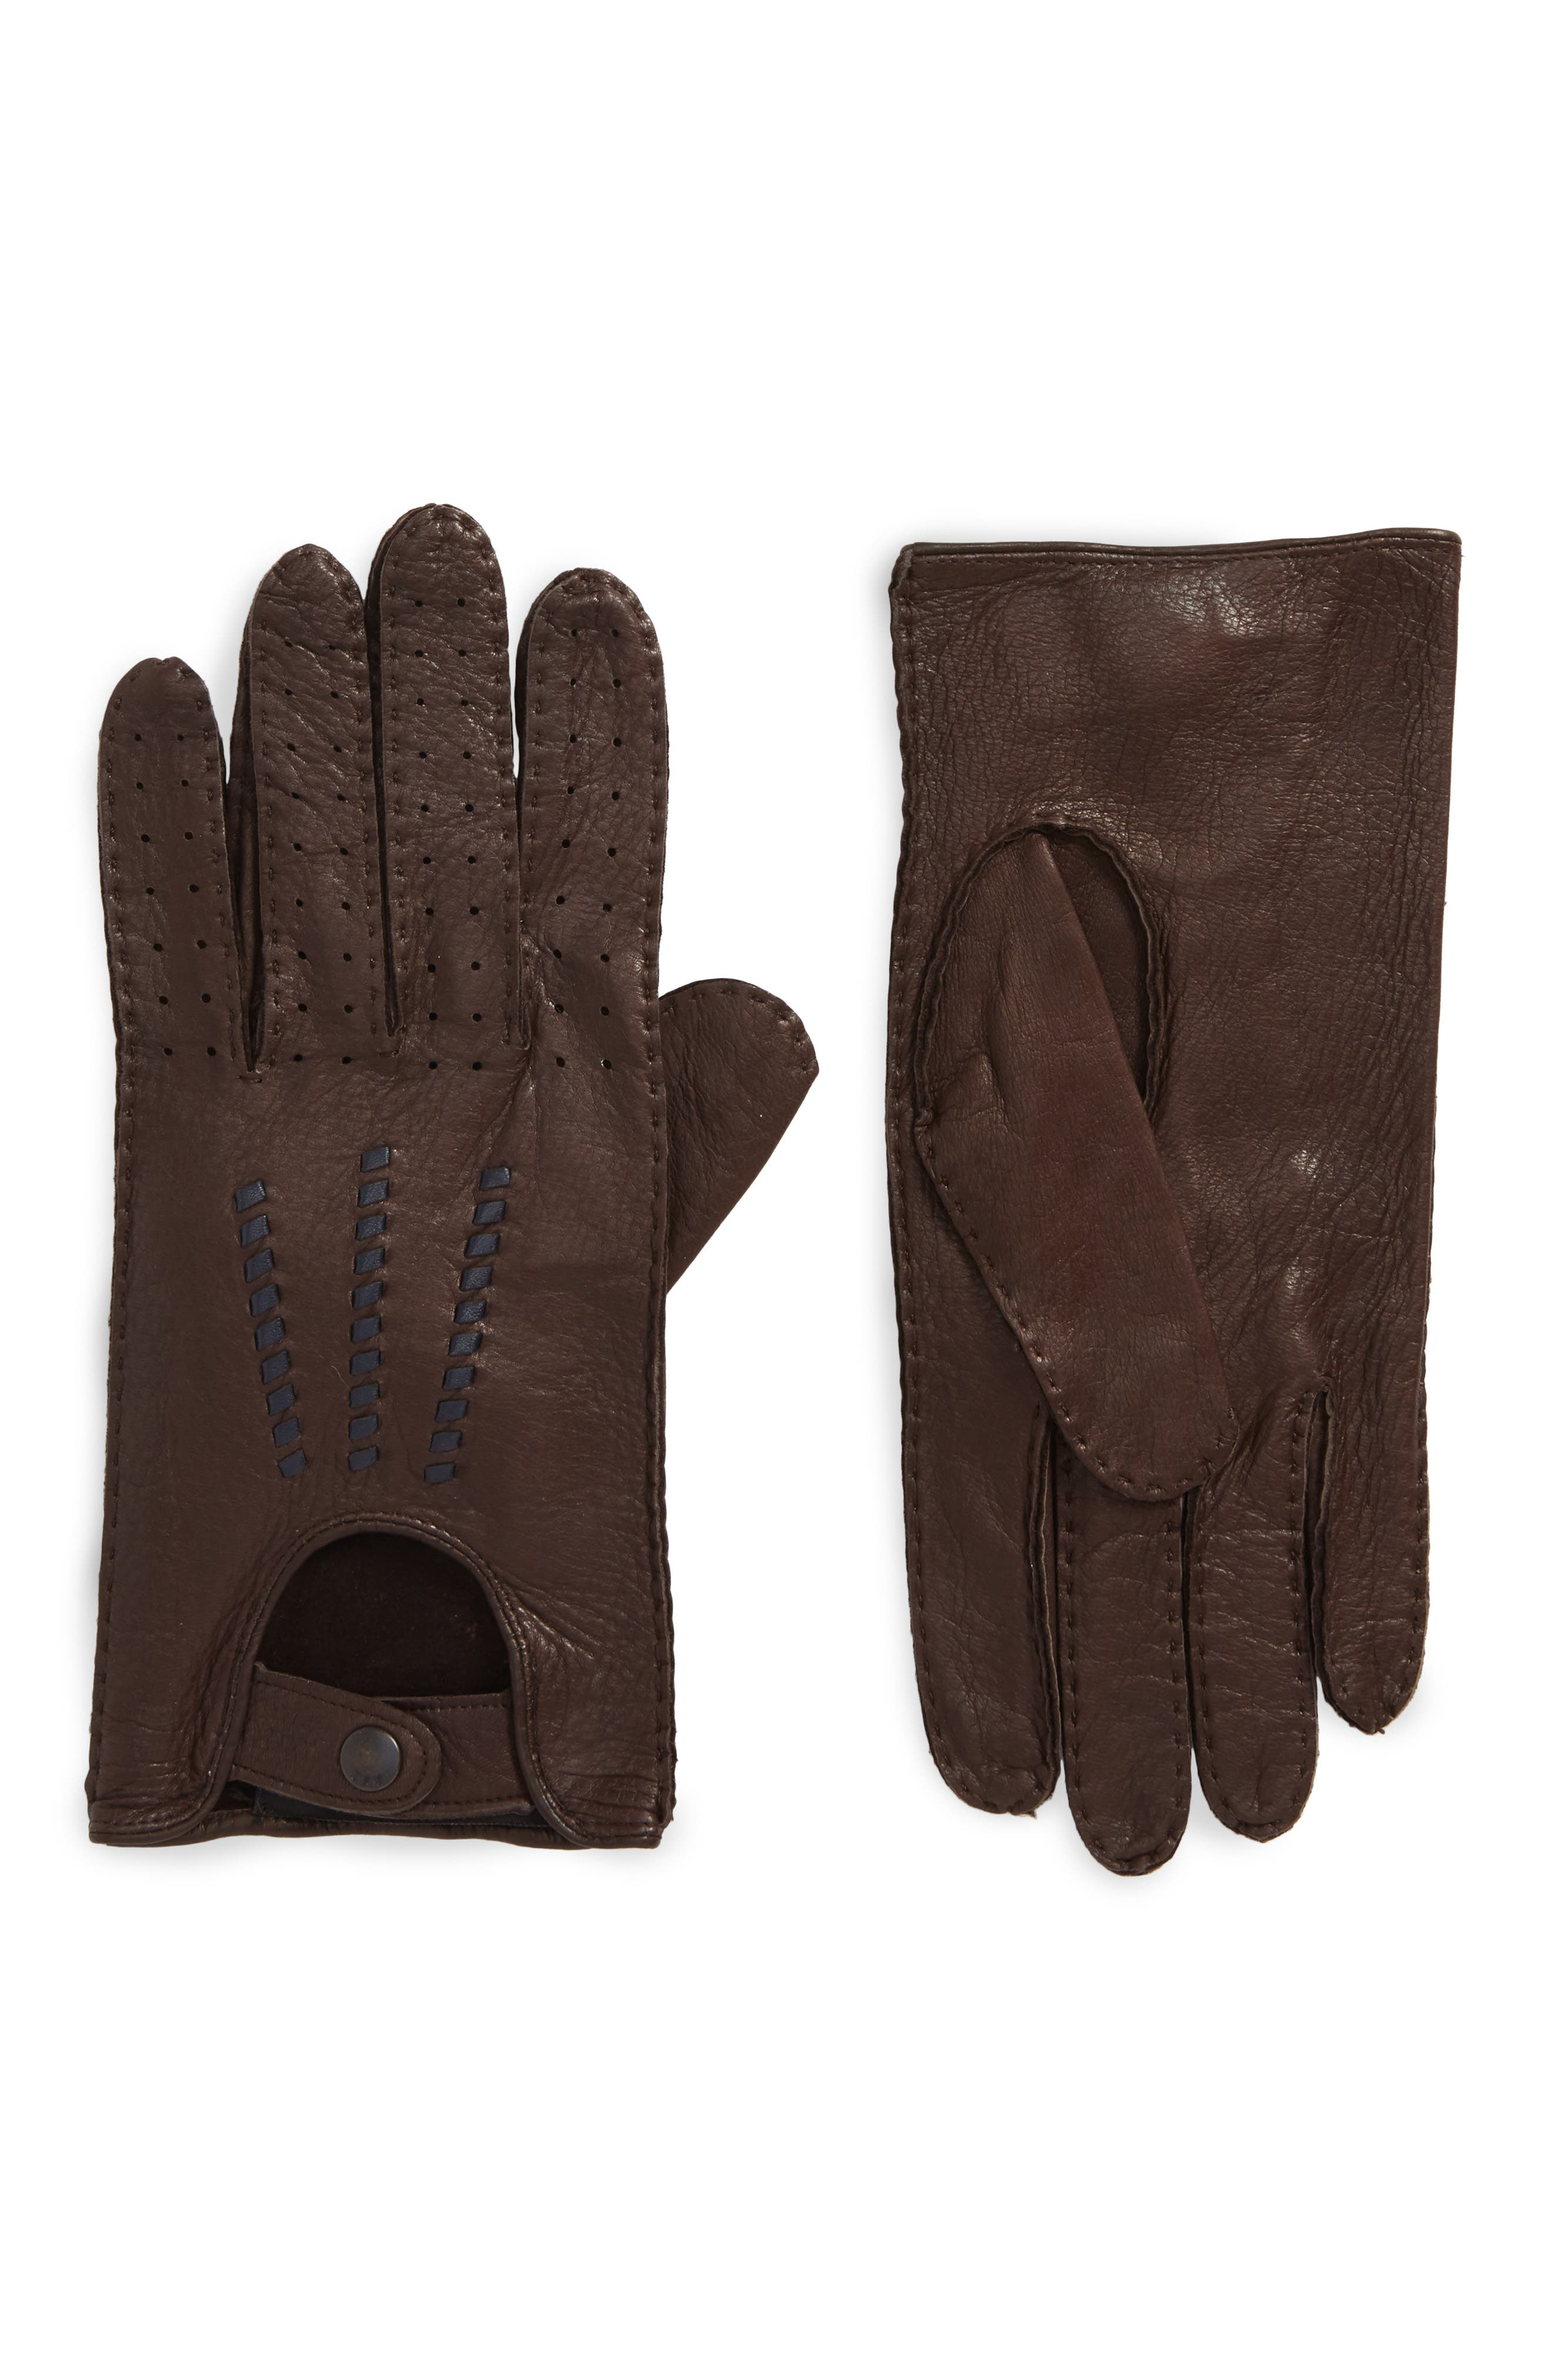 Deerskin Driving Gloves,                             Main thumbnail 1, color,                             Chocolate